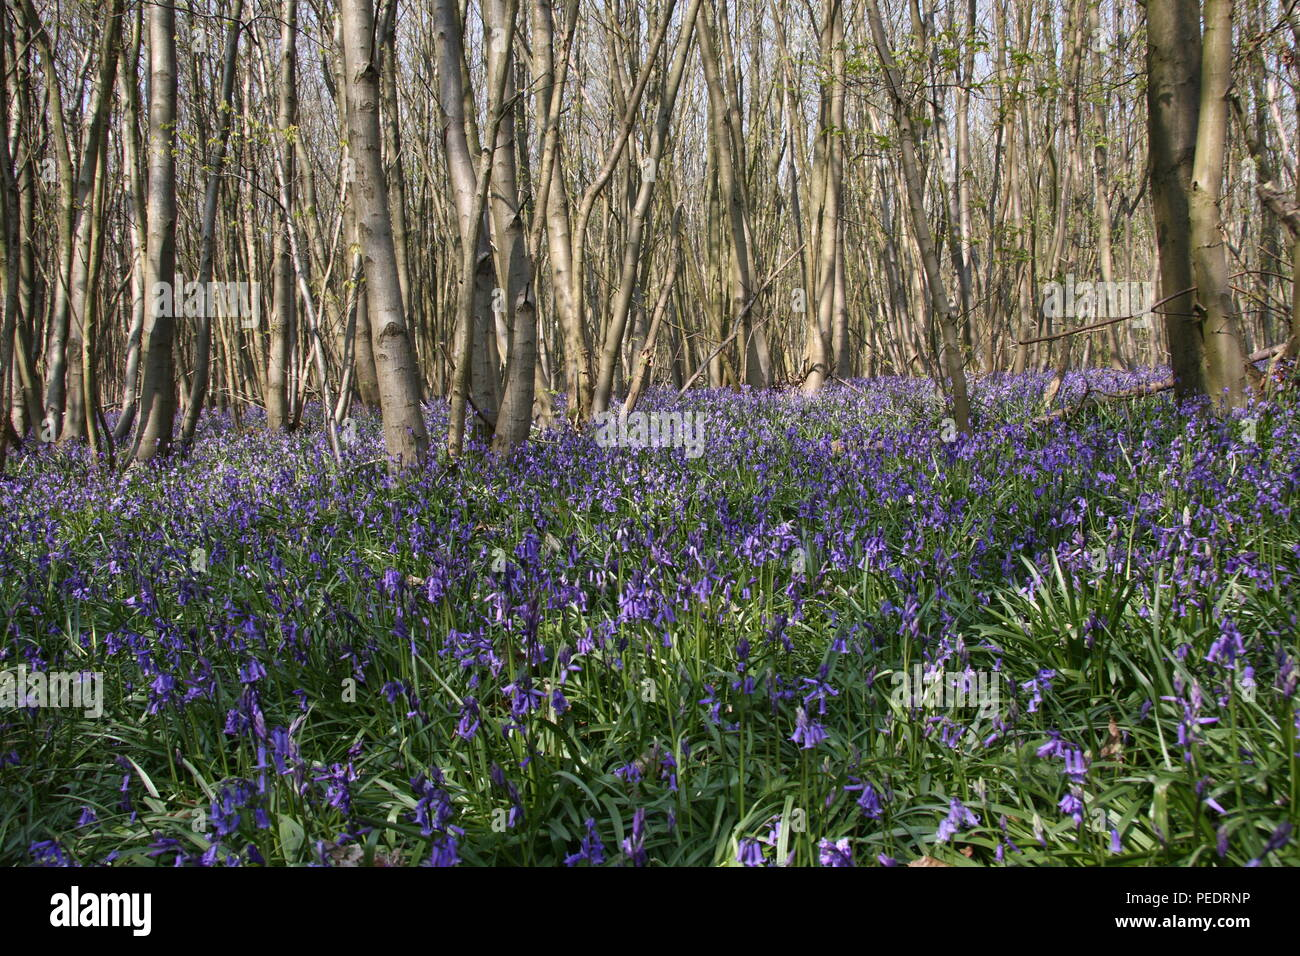 Hyacinthoides non scripta bluebell spring flowers in an english hyacinthoides non scripta bluebell spring flowers in an english chestnut wood these ancient woodlands have a carpet of bluebells on the understory mightylinksfo